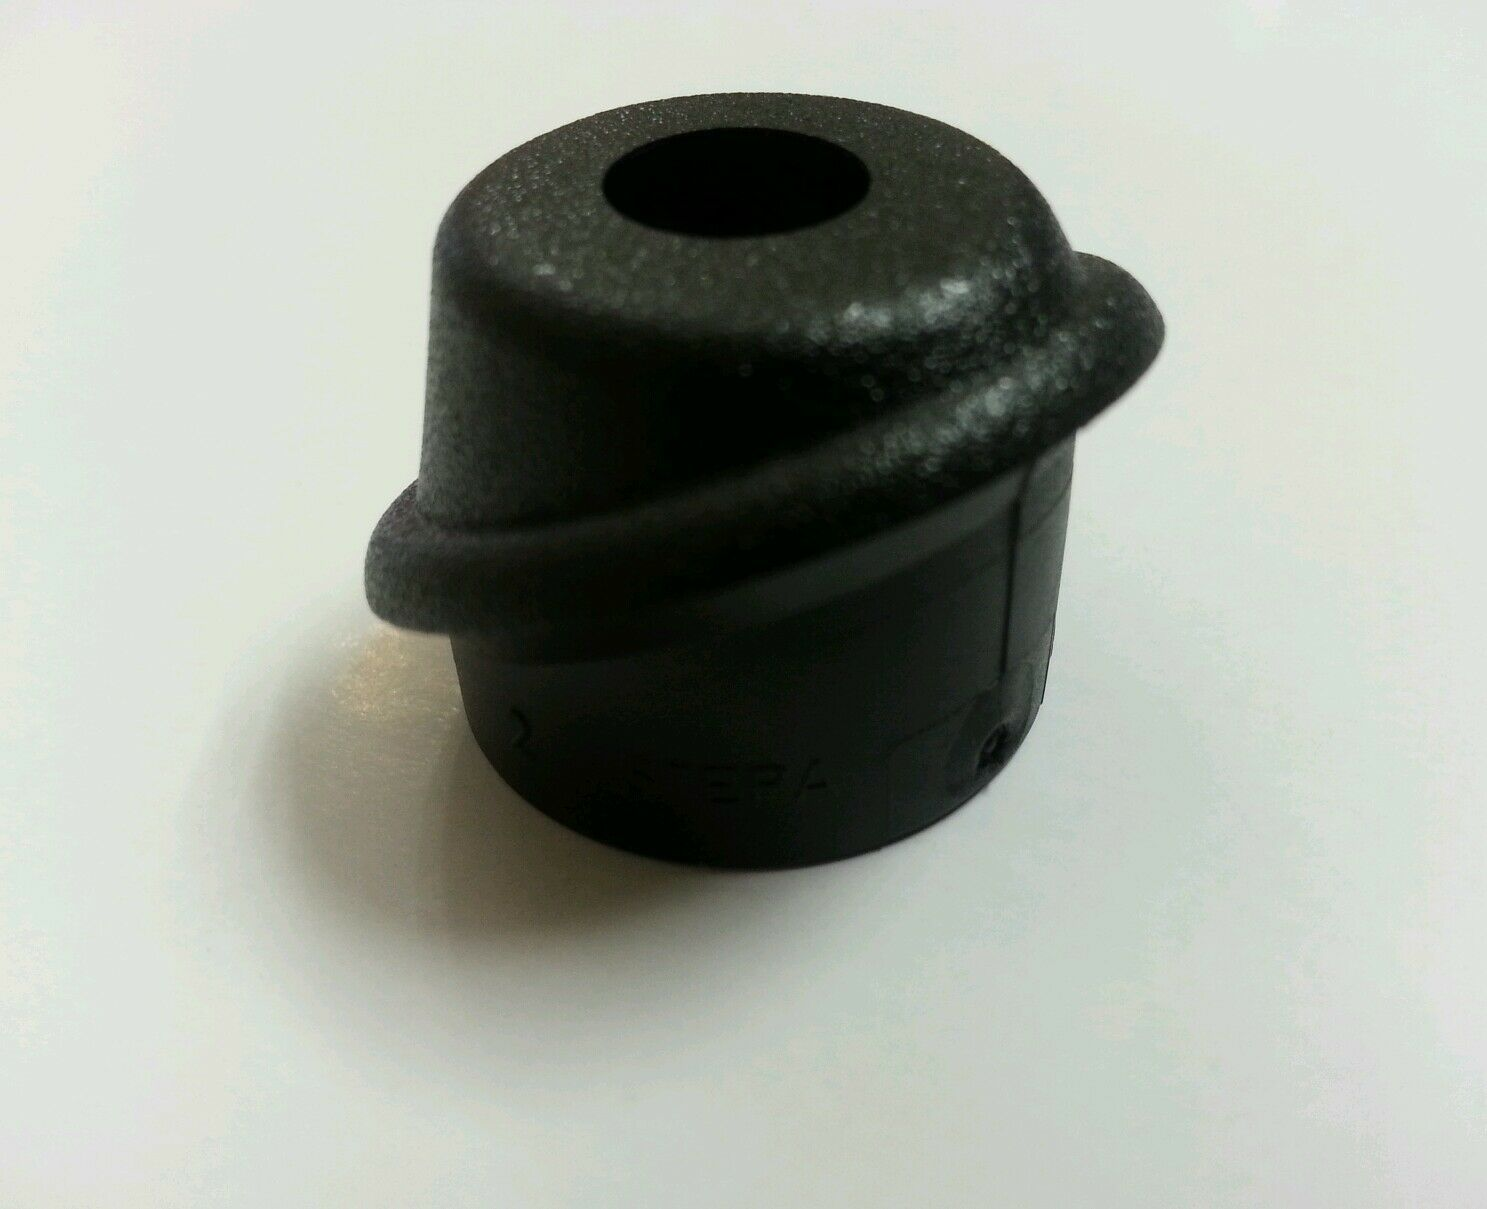 Genuine Bmw Original1996 1999 Z3 Antenna Rubber Grommet